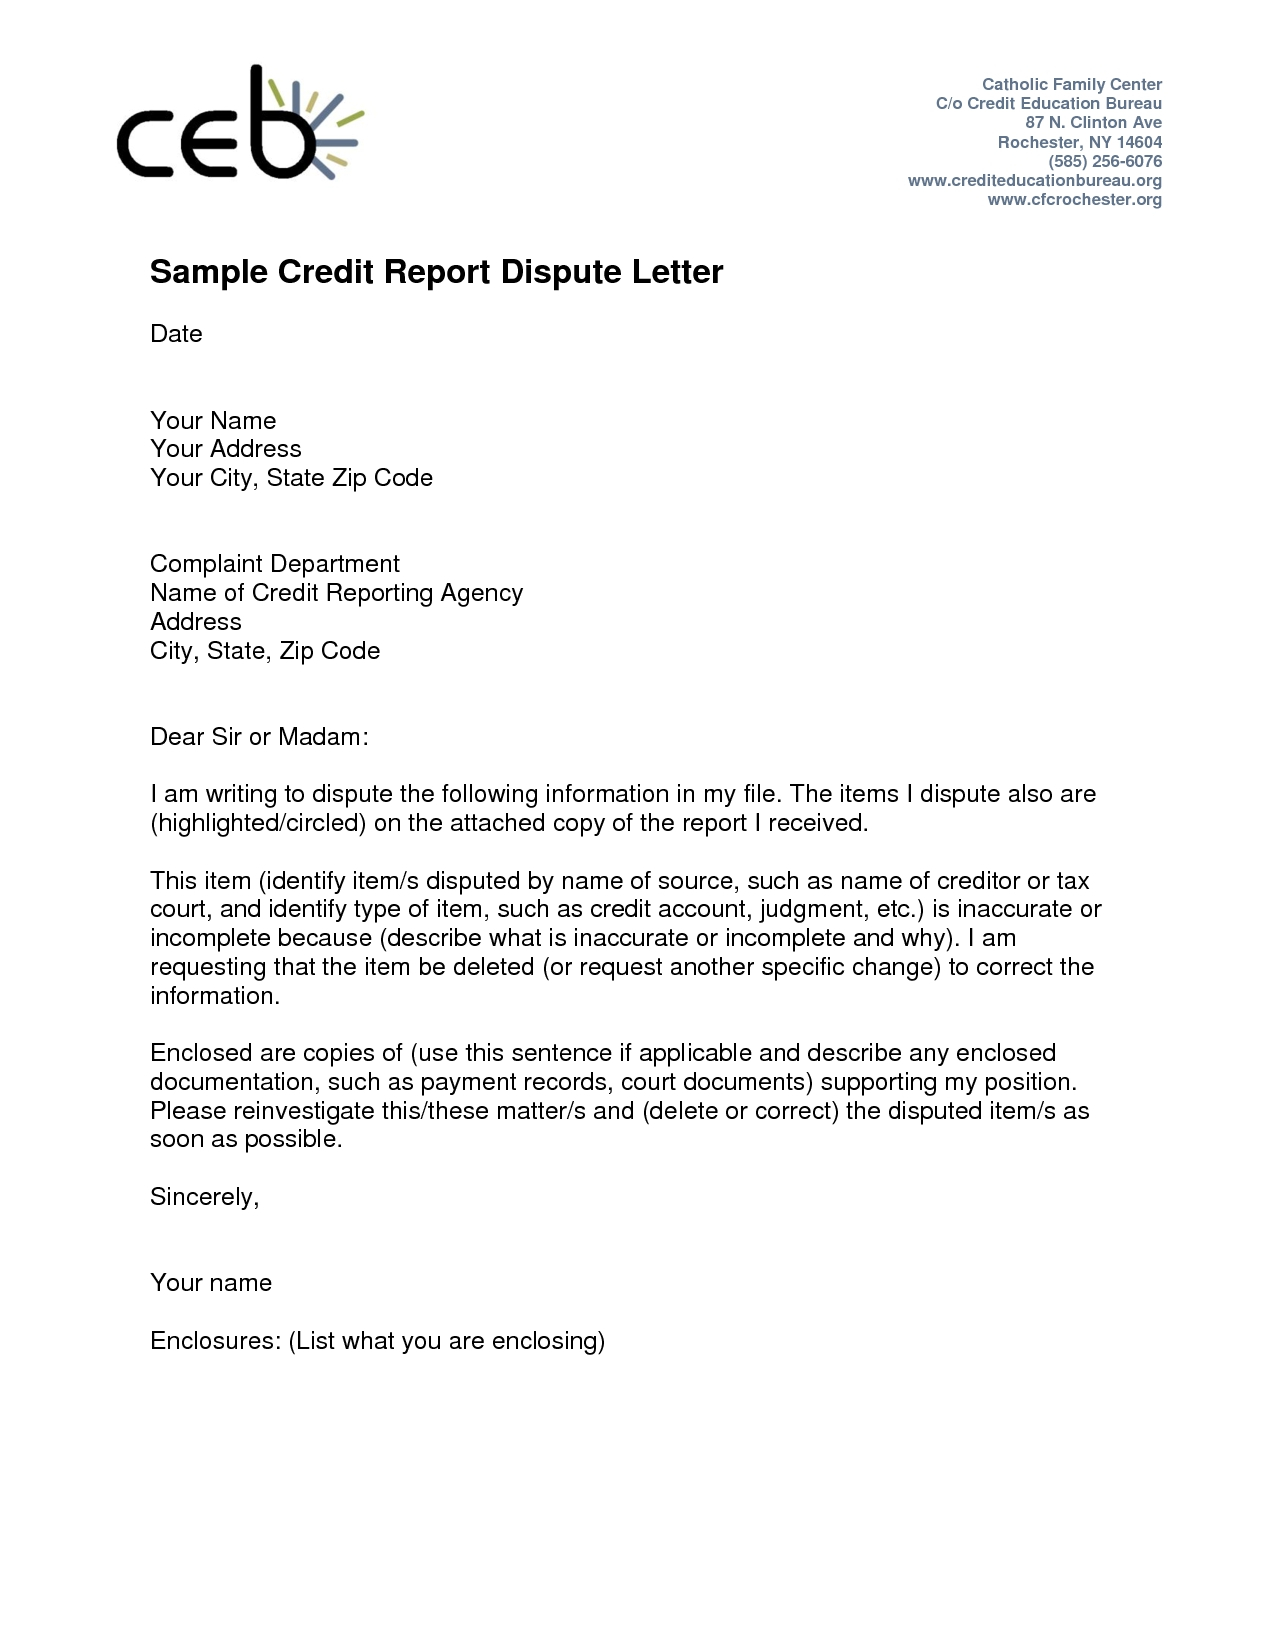 collection dispute letter template Collection-credit dispute letter templates 6-l